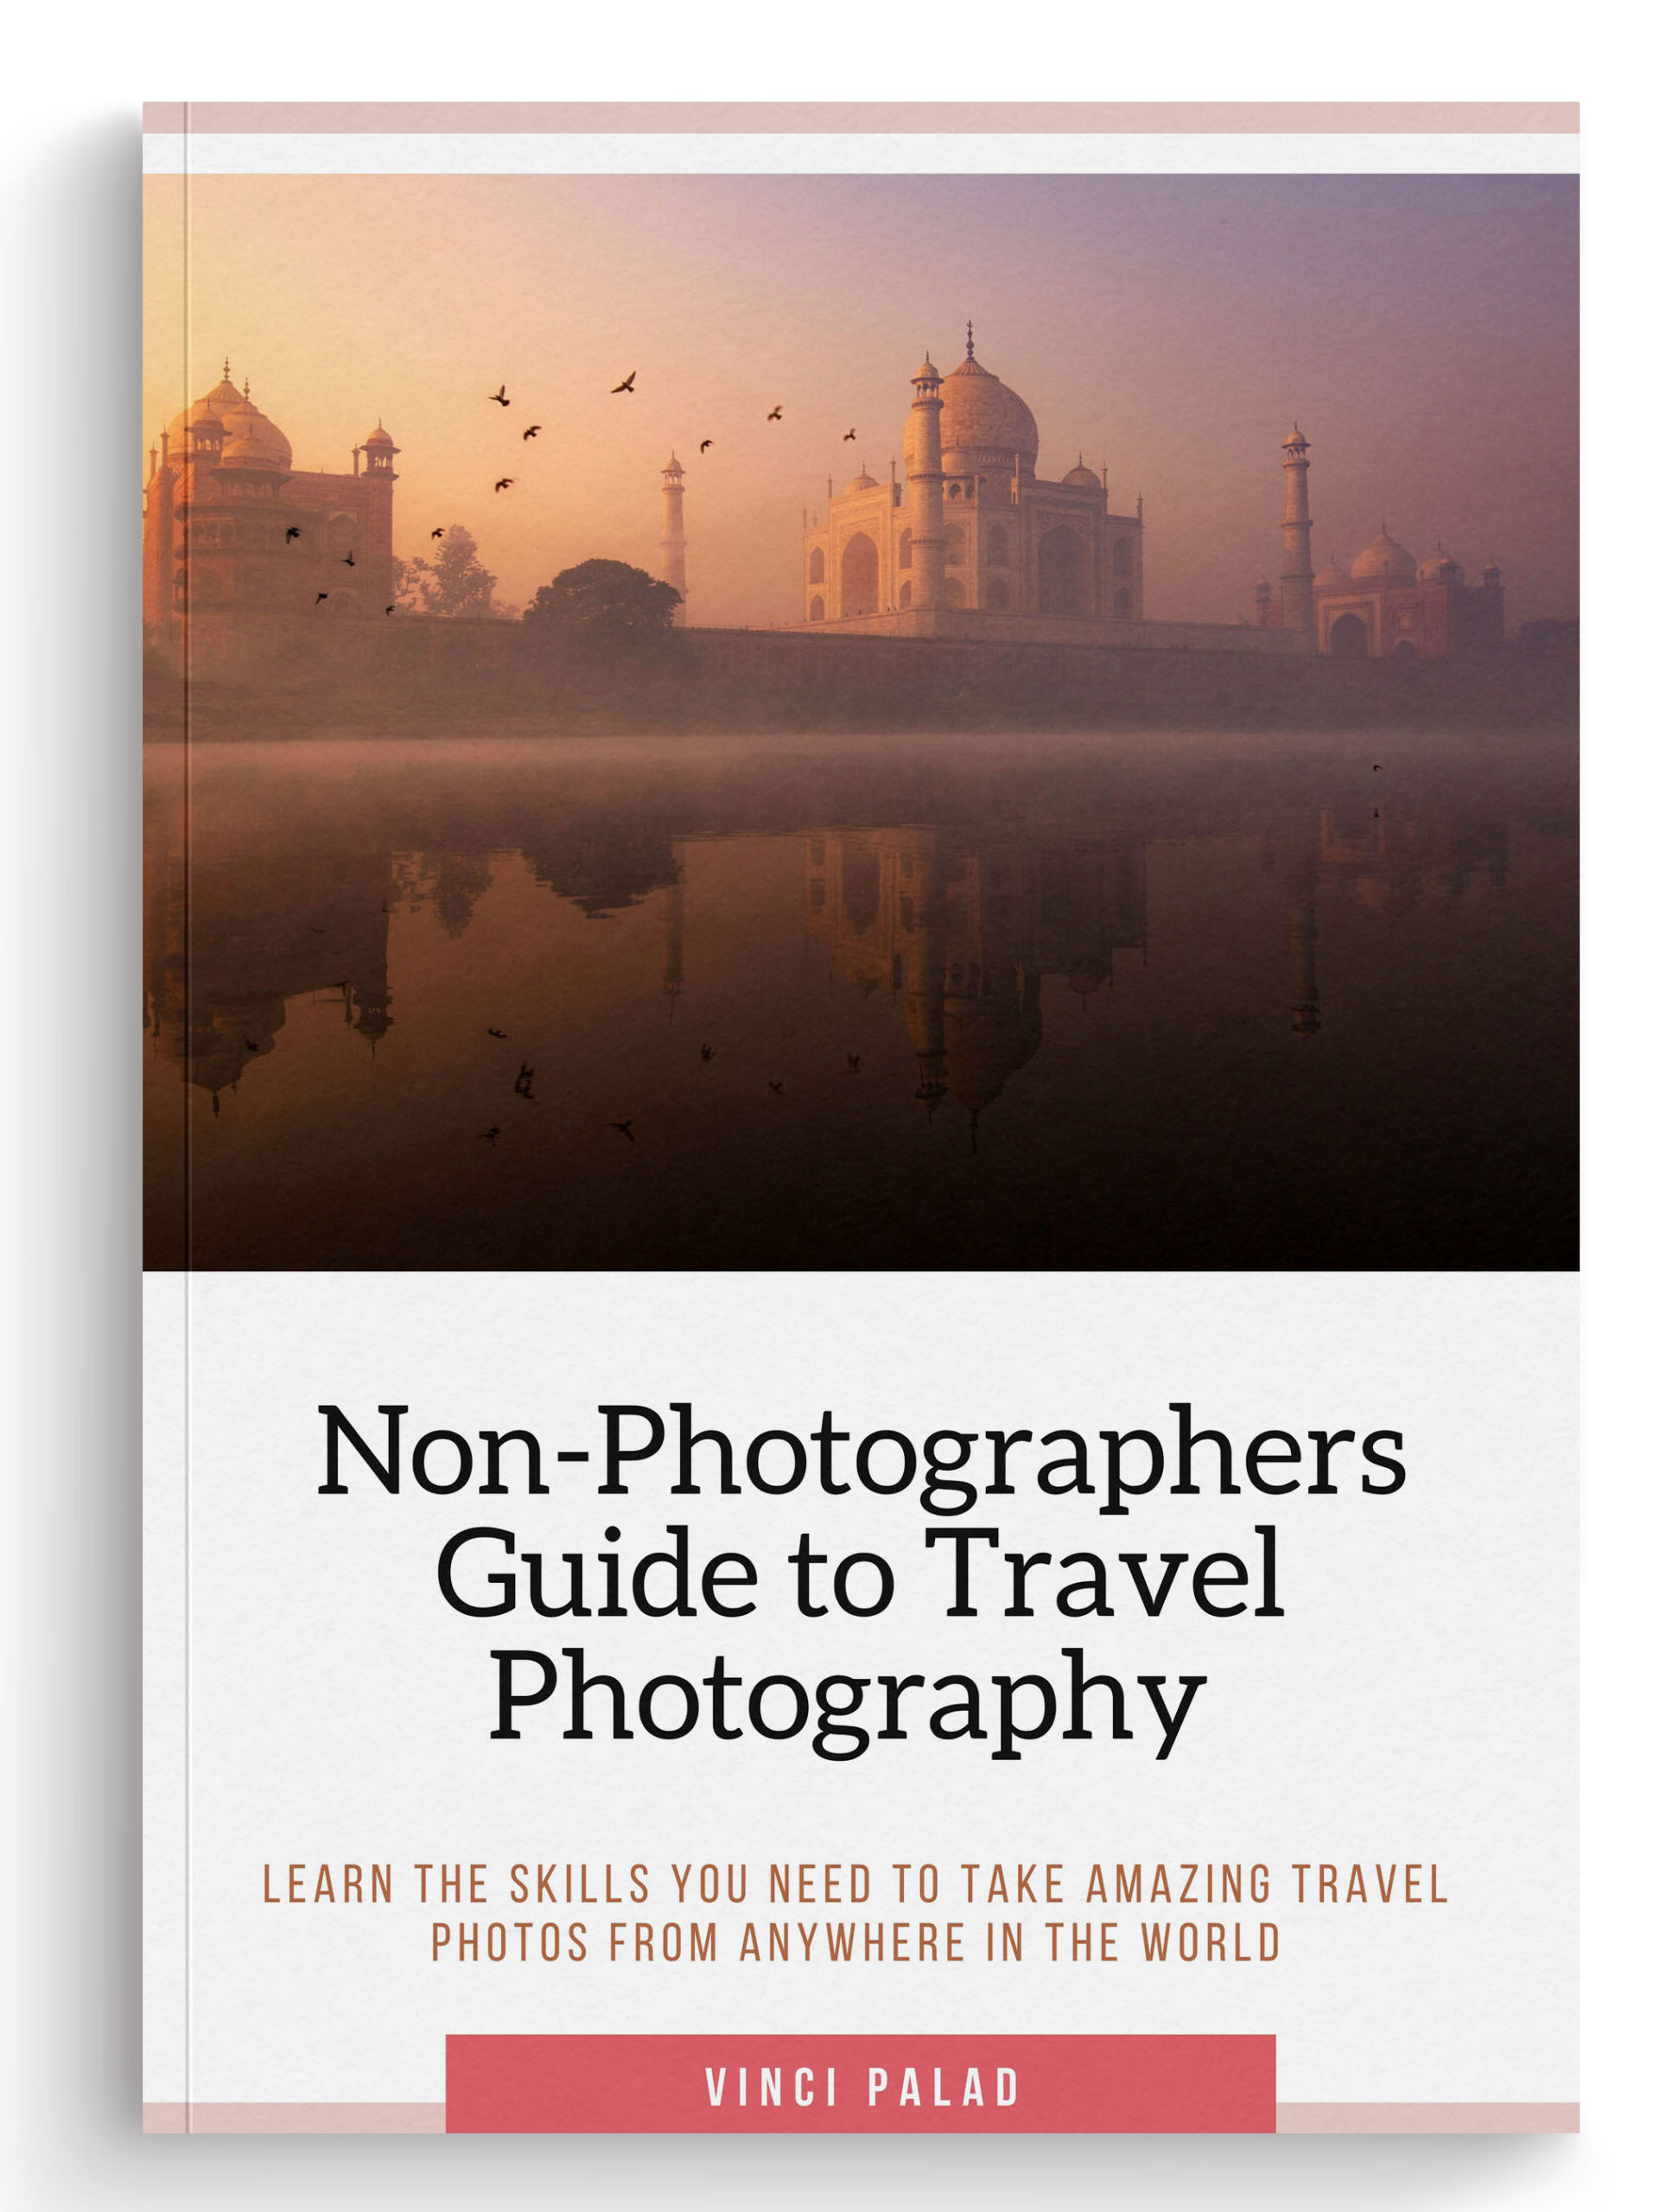 Non-Photographers Guide To Photography Cover close up